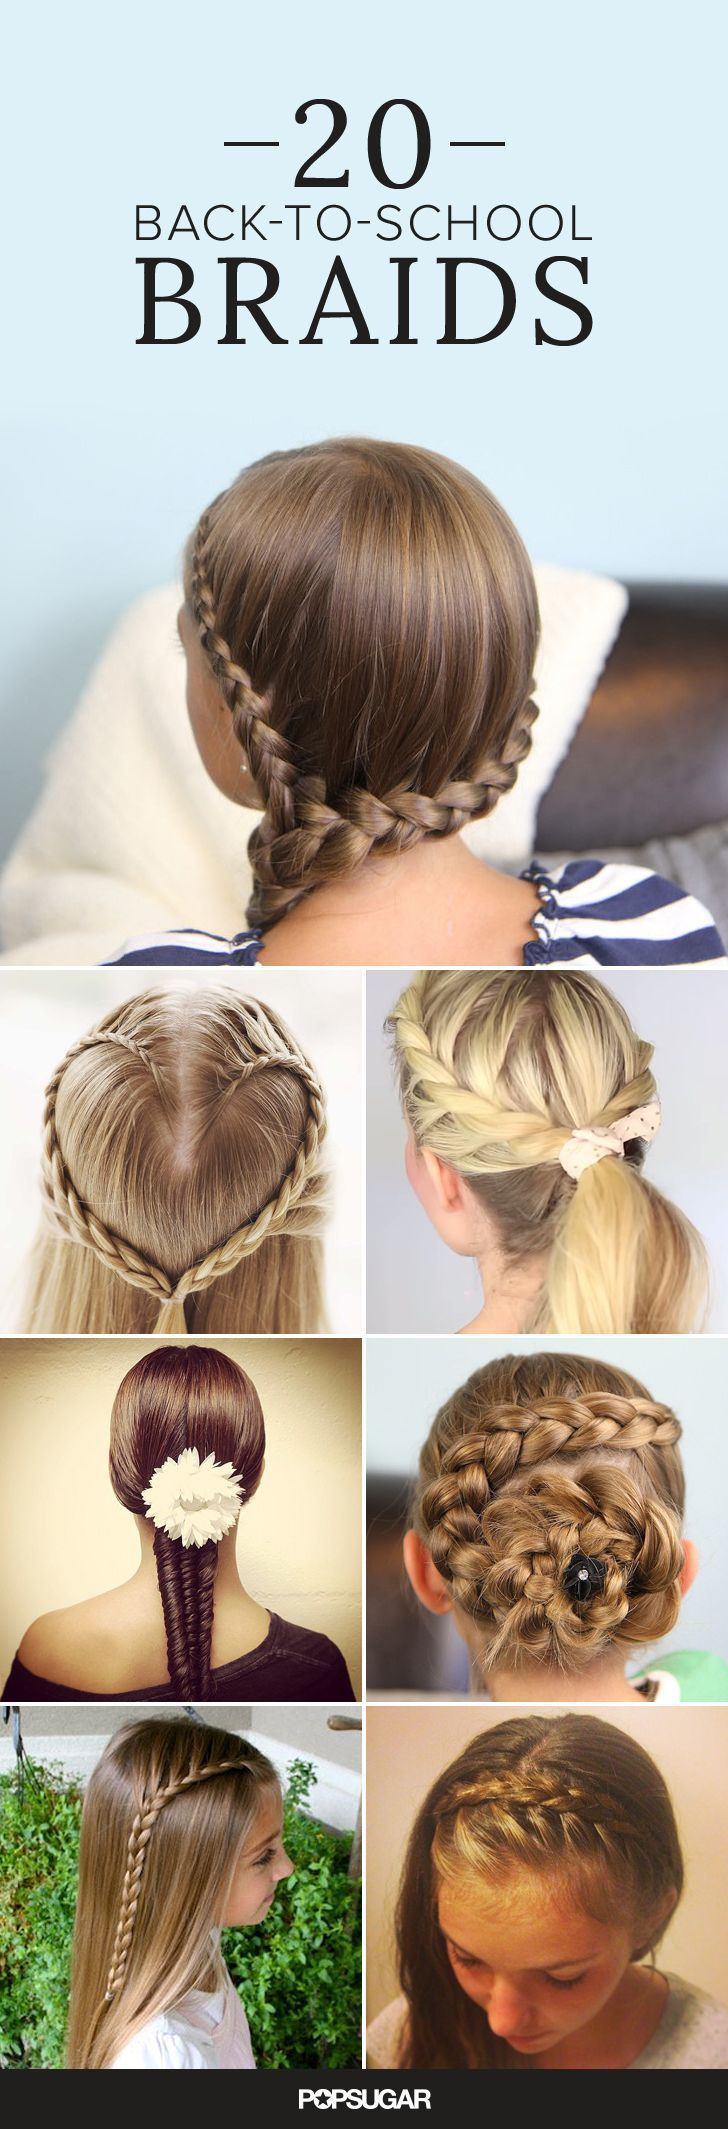 26 Braids To Inspire A School Morning Do Braided